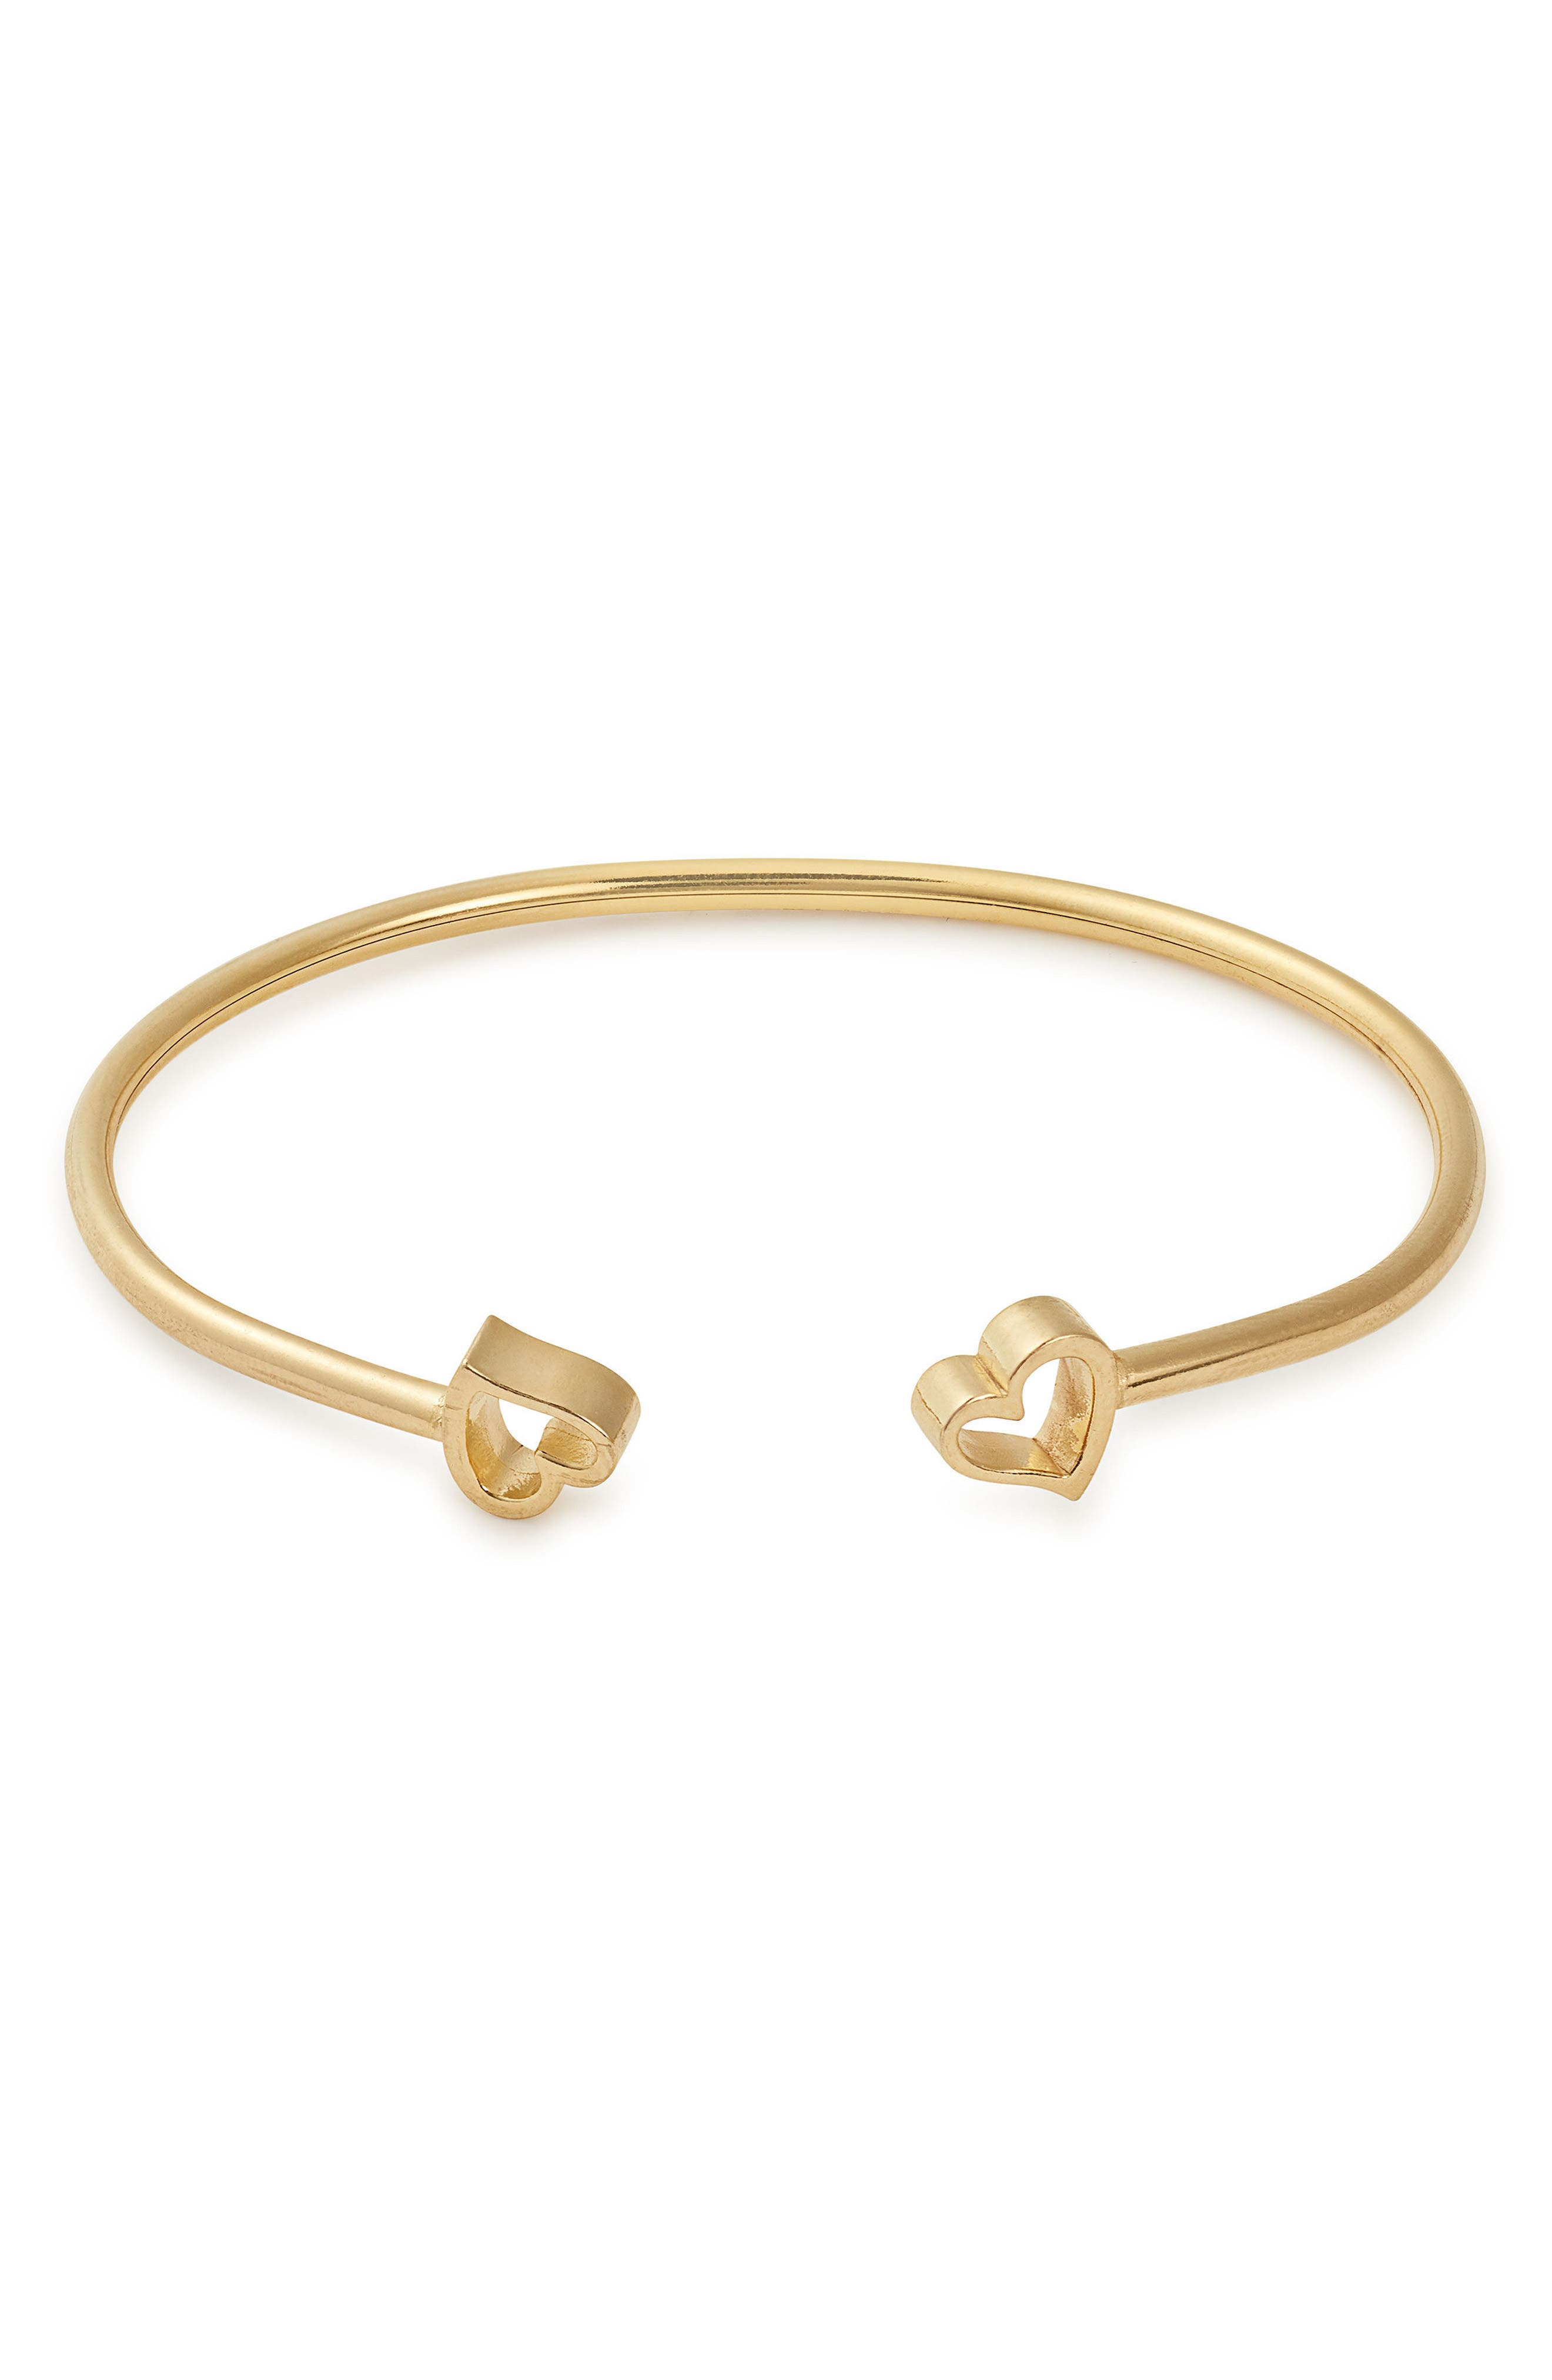 Formidable H Cuff,                         Main,                         color, Gold